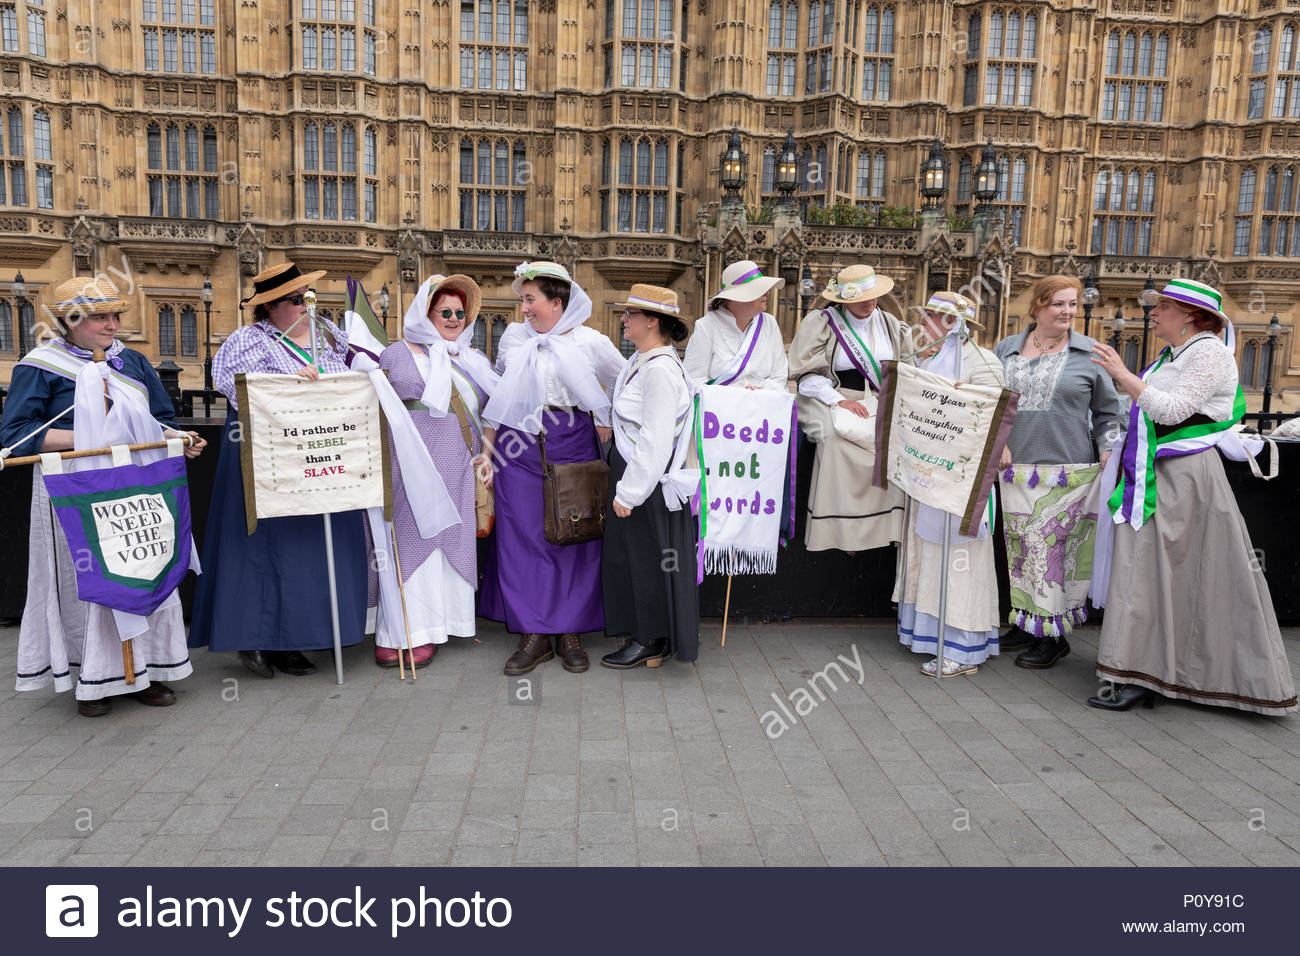 Campaigner for women's rights in procession celebrating 100 years of the women's vote. - Stock Image